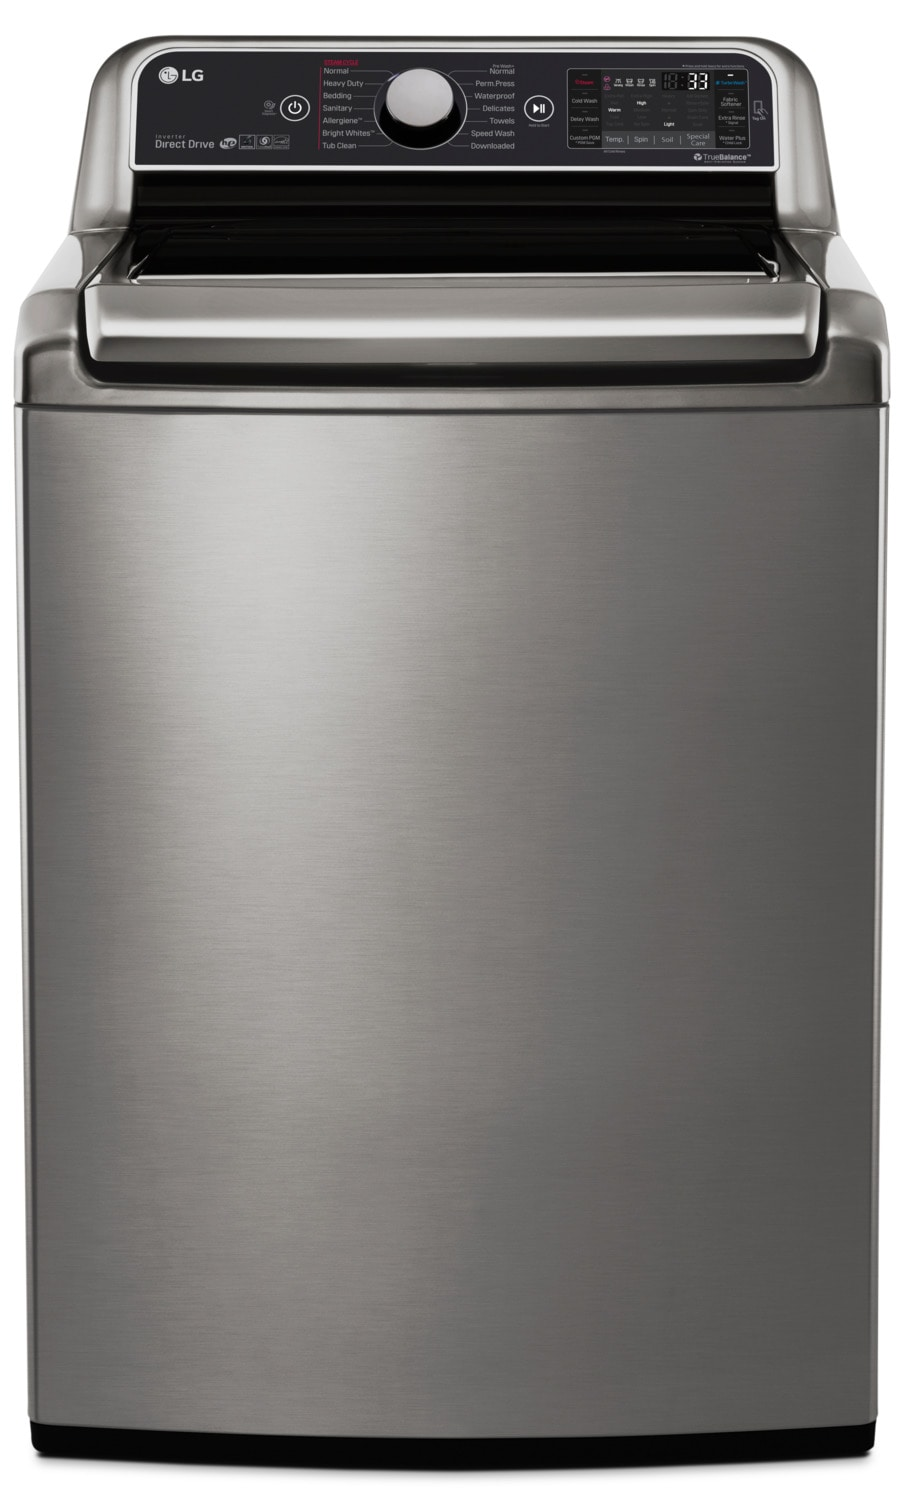 Washers and Dryers - LG 6.0 Cu. Ft. Top-Load Steam™ Washer with TurboWash - WT7600HVA